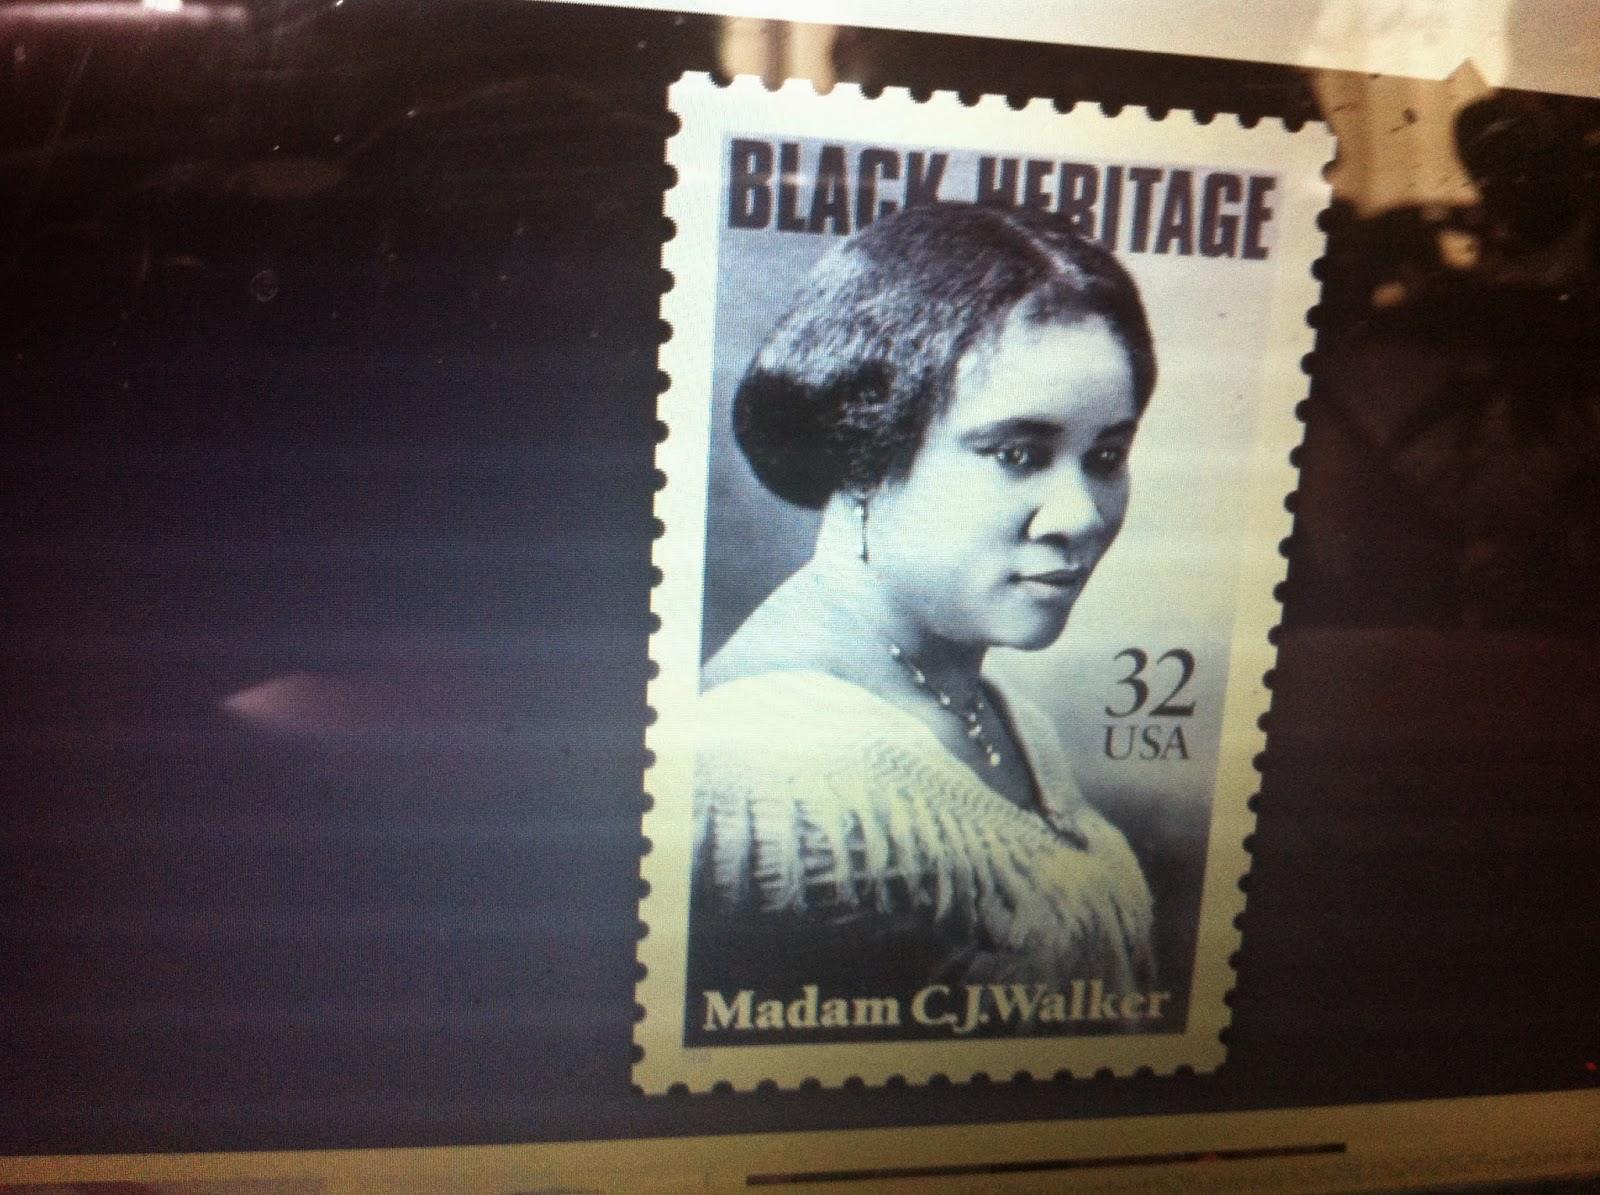 madam cj walker biography essay Immediately download the madam cj walker summary, chapter-by-chapter analysis, book notes, essays, quotes, character descriptions, lesson plans, and more - everything you need for studying or teaching madam cj walker.